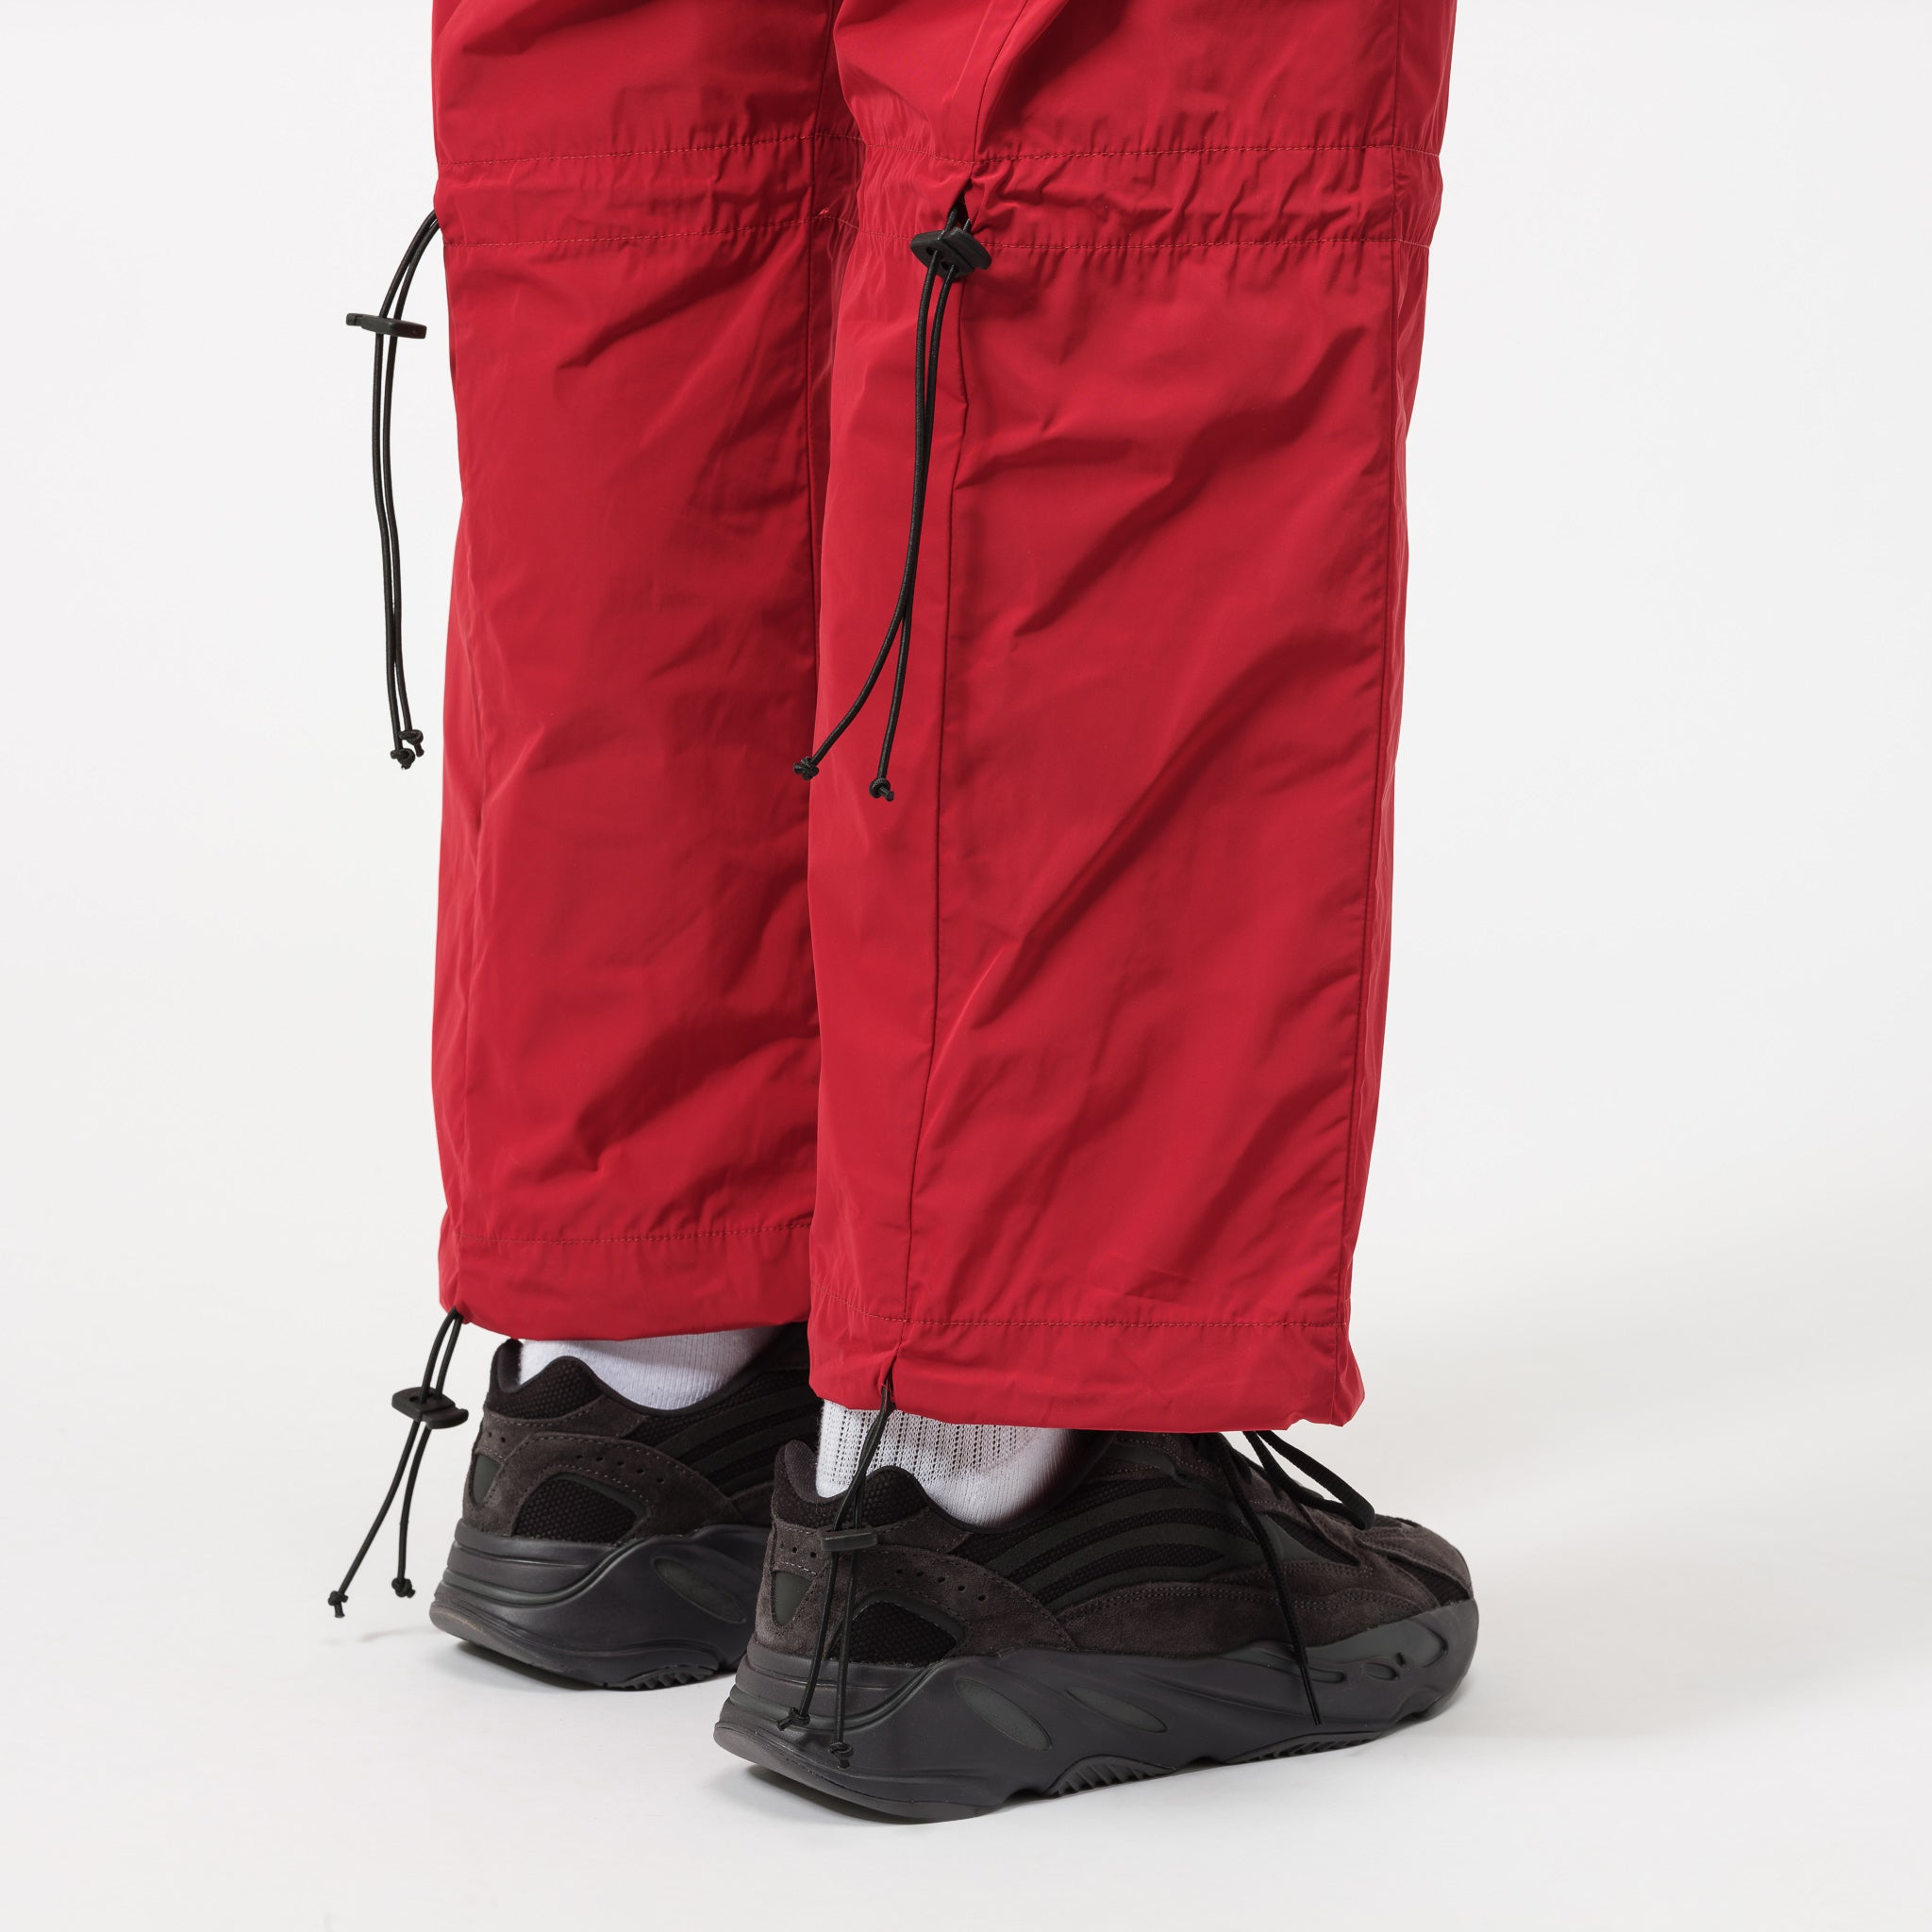 Knee Cinched Trouser in Red